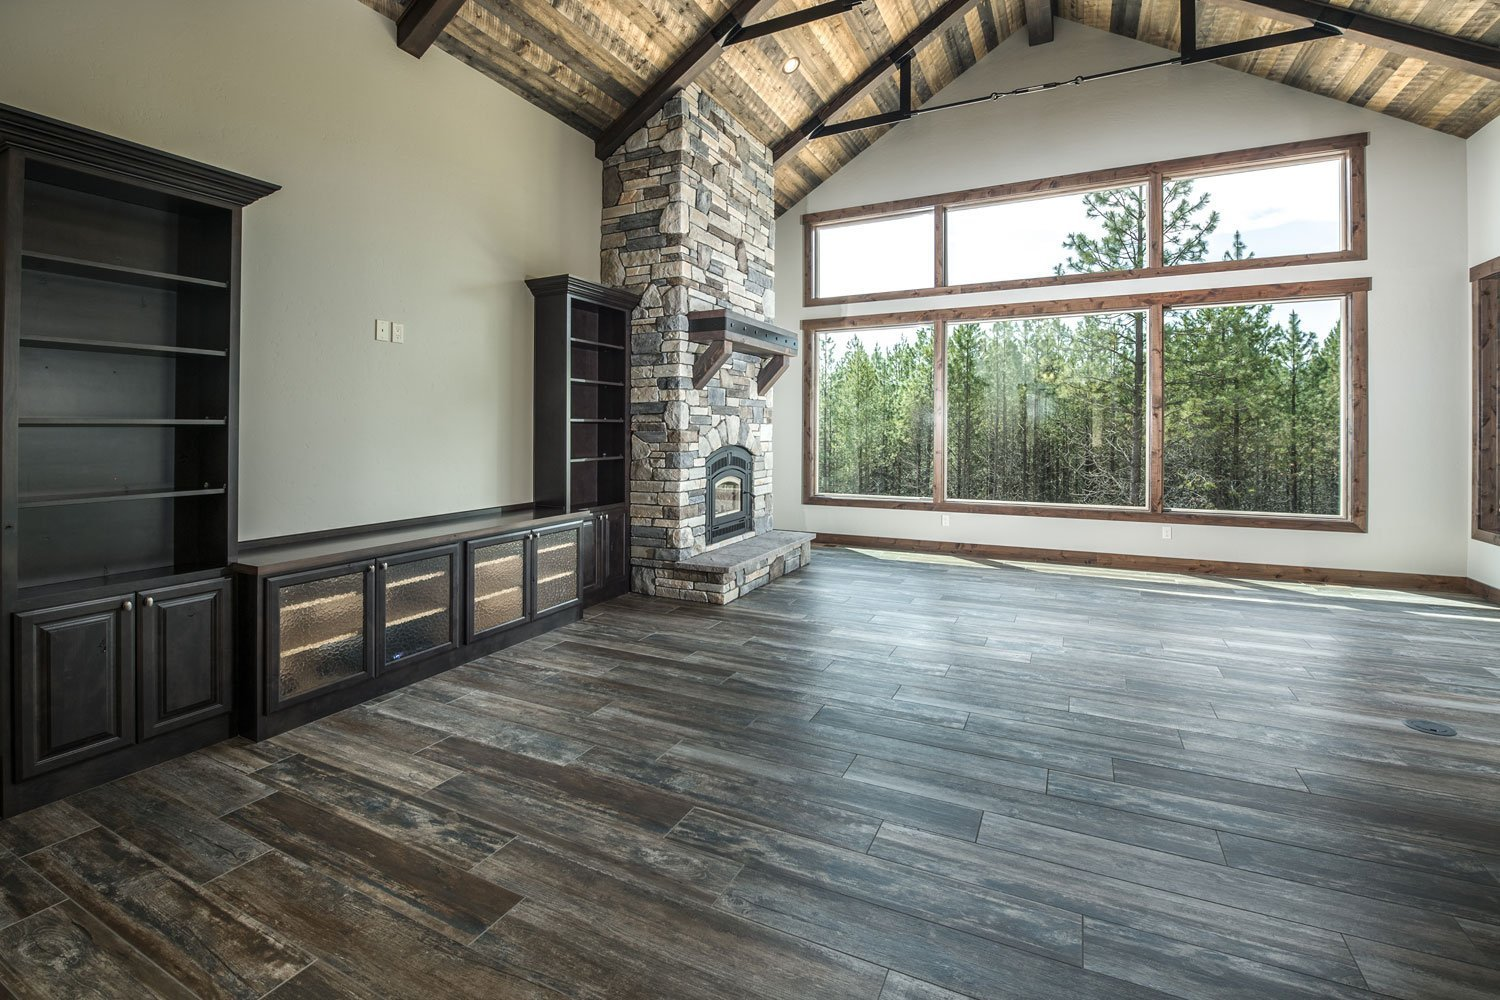 bane-built-pines-great-room-from-kitchen-4586-Edit